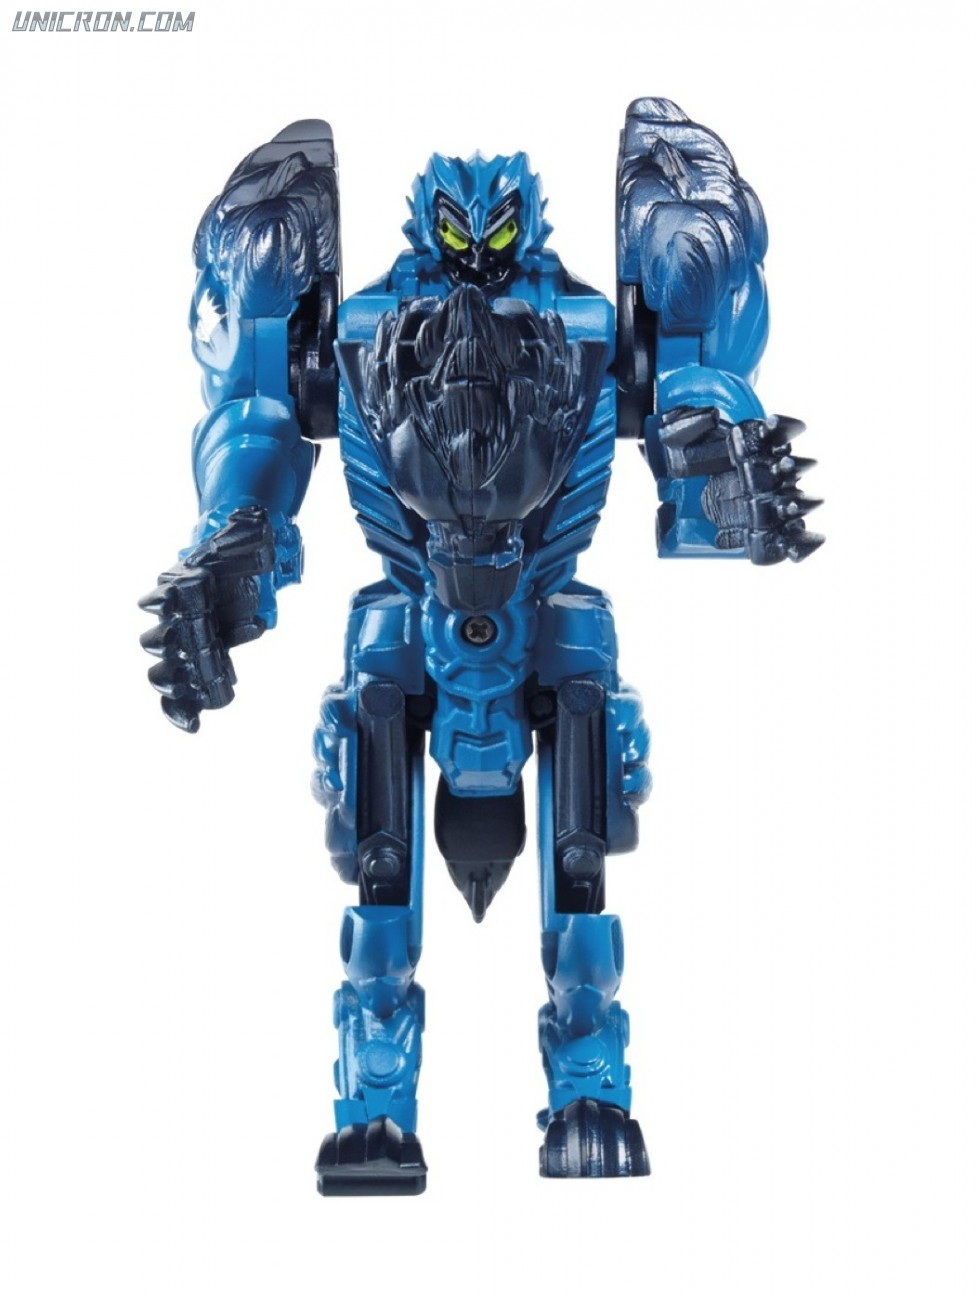 Transformers 4 Age of Extinction Steeljaw (1-step changer) toy